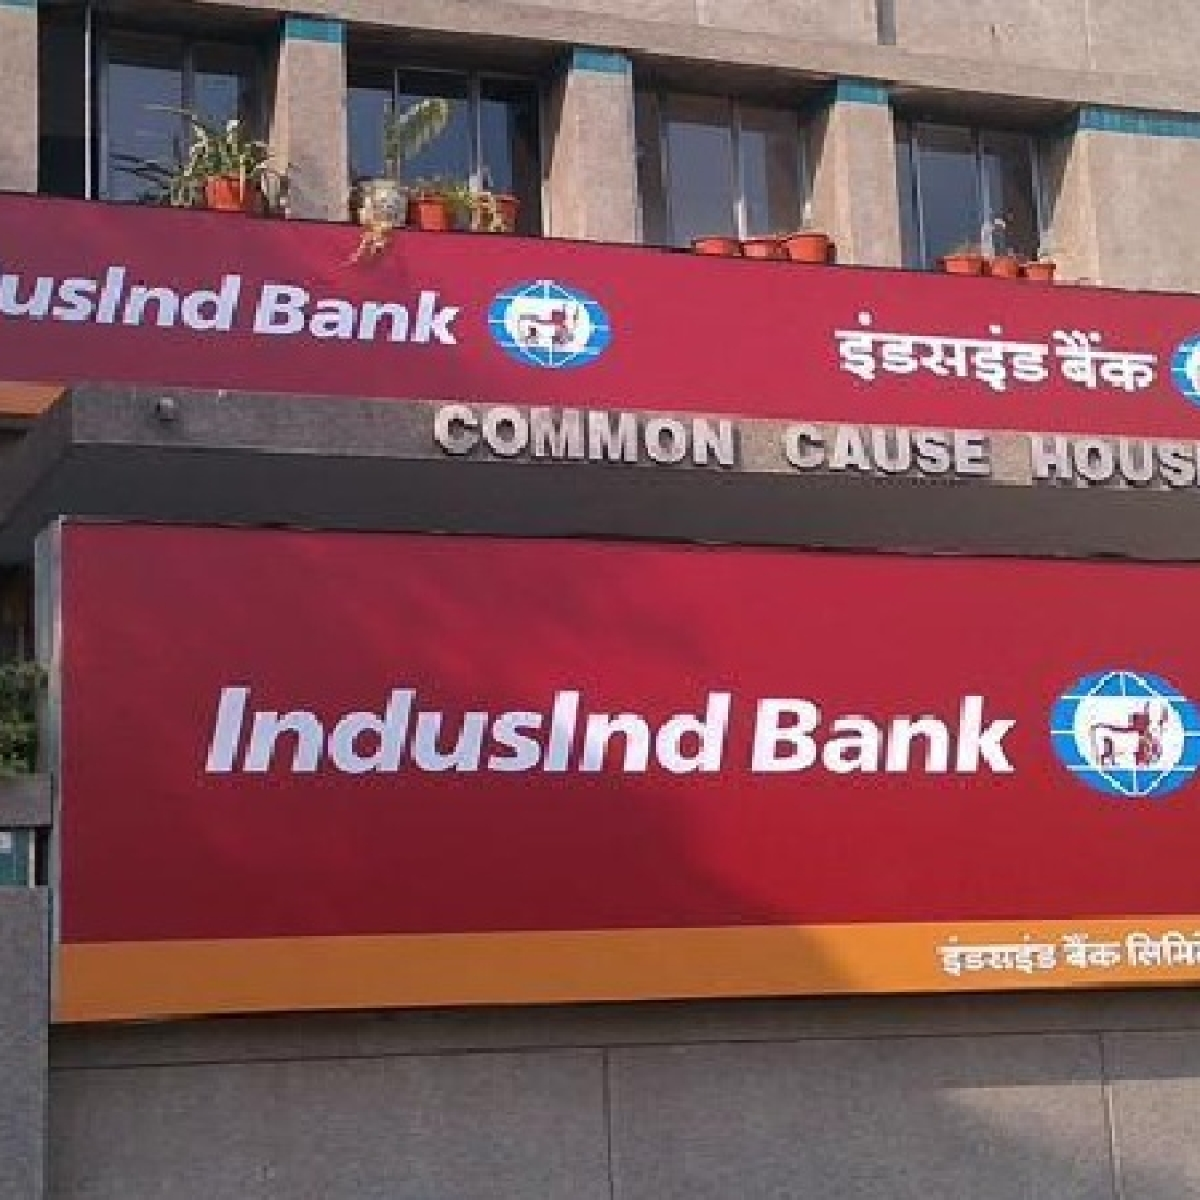 IndusInd Bank shares surge nearly 14% post Q4 earnings